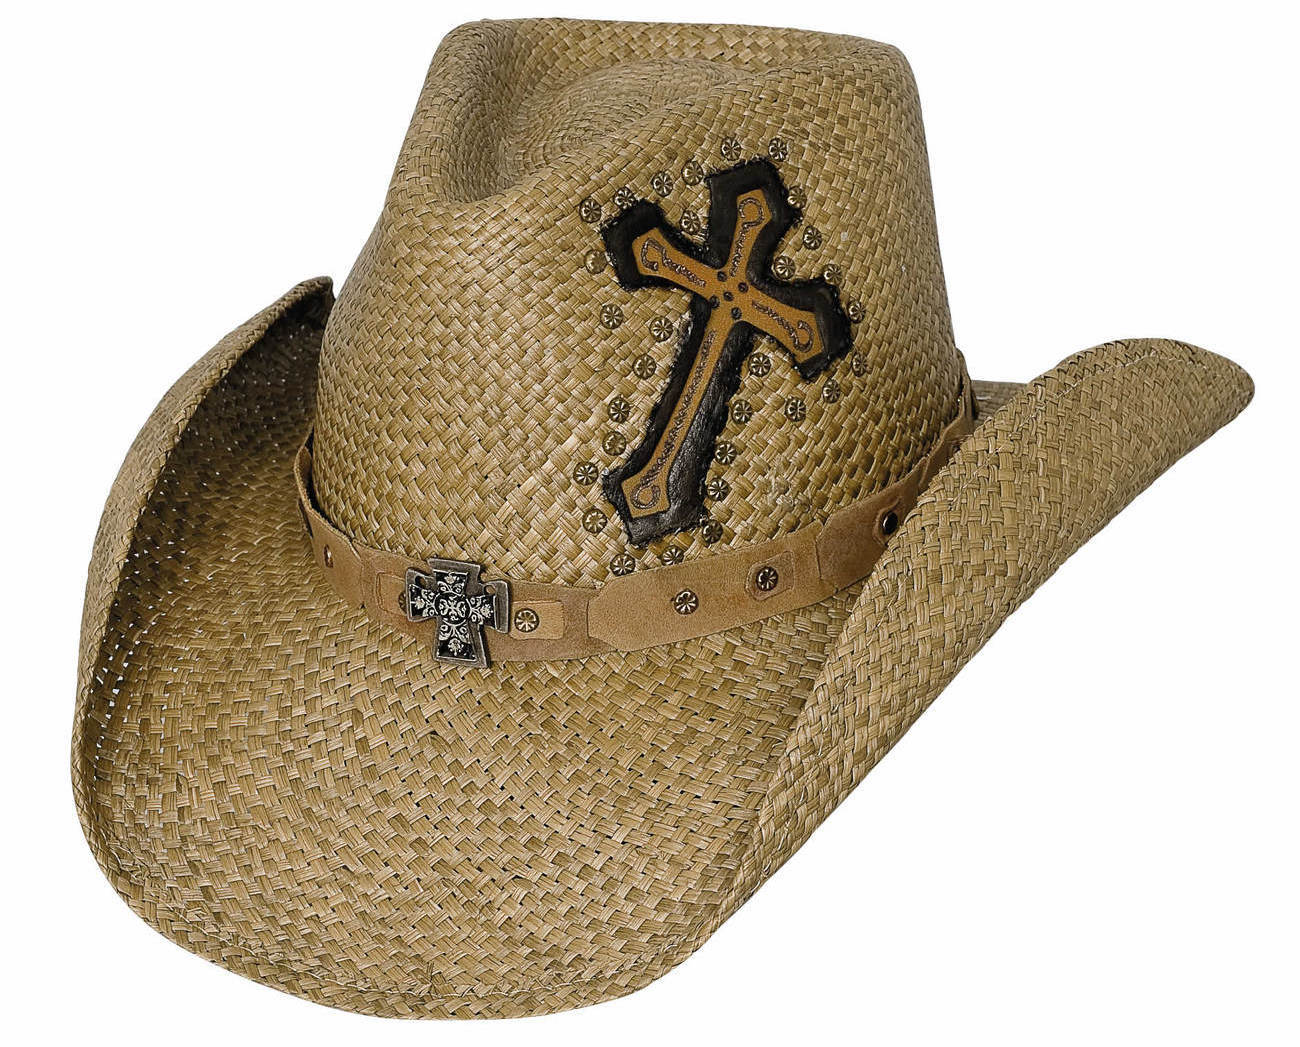 Bullhide Living On A Prayer Panama Straw Cowgirl Hat Pinchfront Crown Pecan - Hats